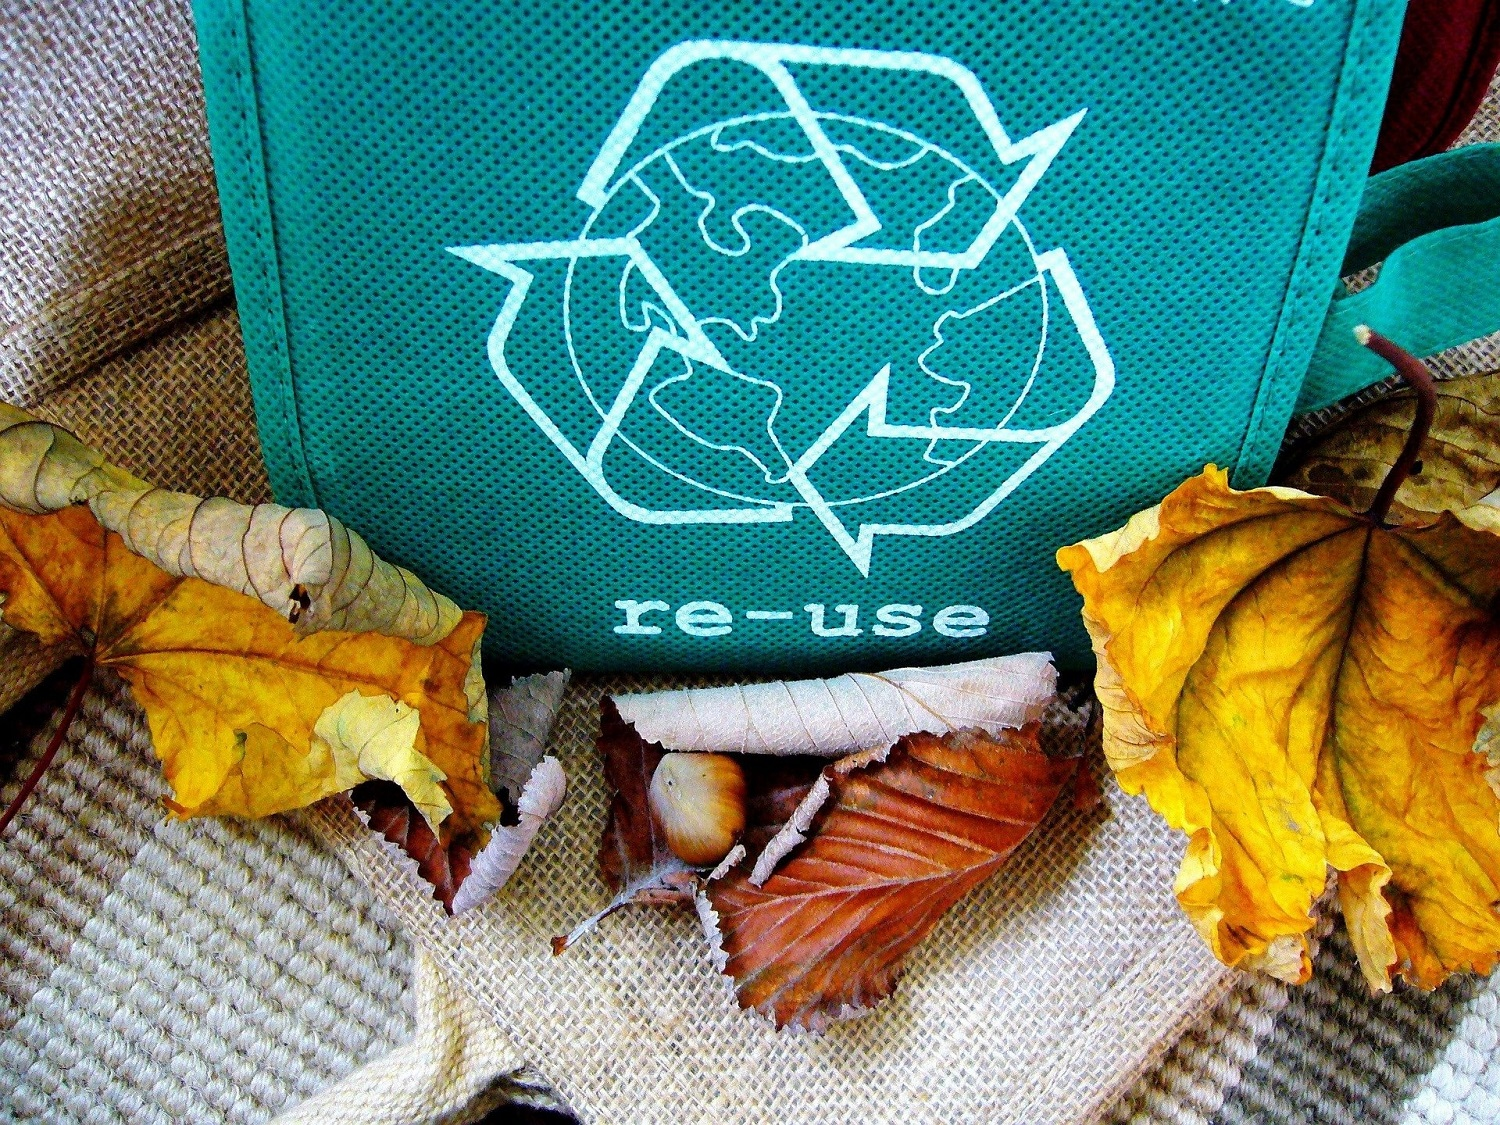 What are the hardest things to recycle?